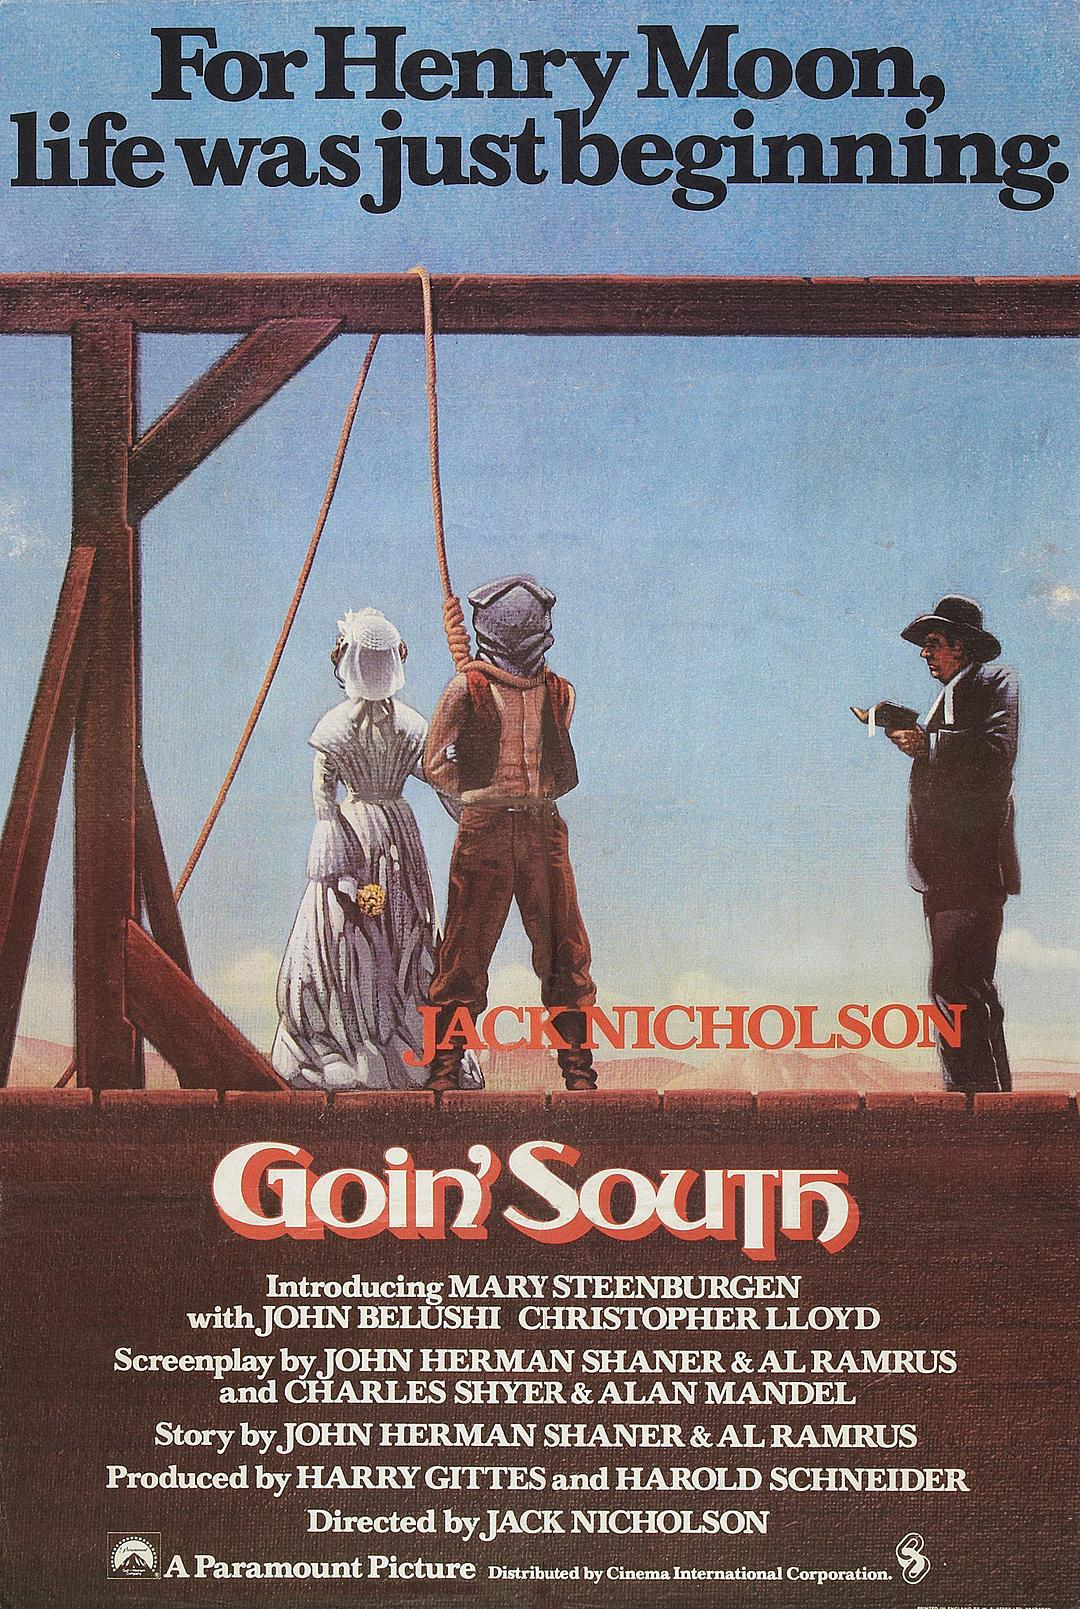 悠悠MP4_MP4电影下载_飞越温柔窝 Goin.South.1978.1080p.AMZN.WEBRip.DDP2.0.x264-monkee 10.91GB